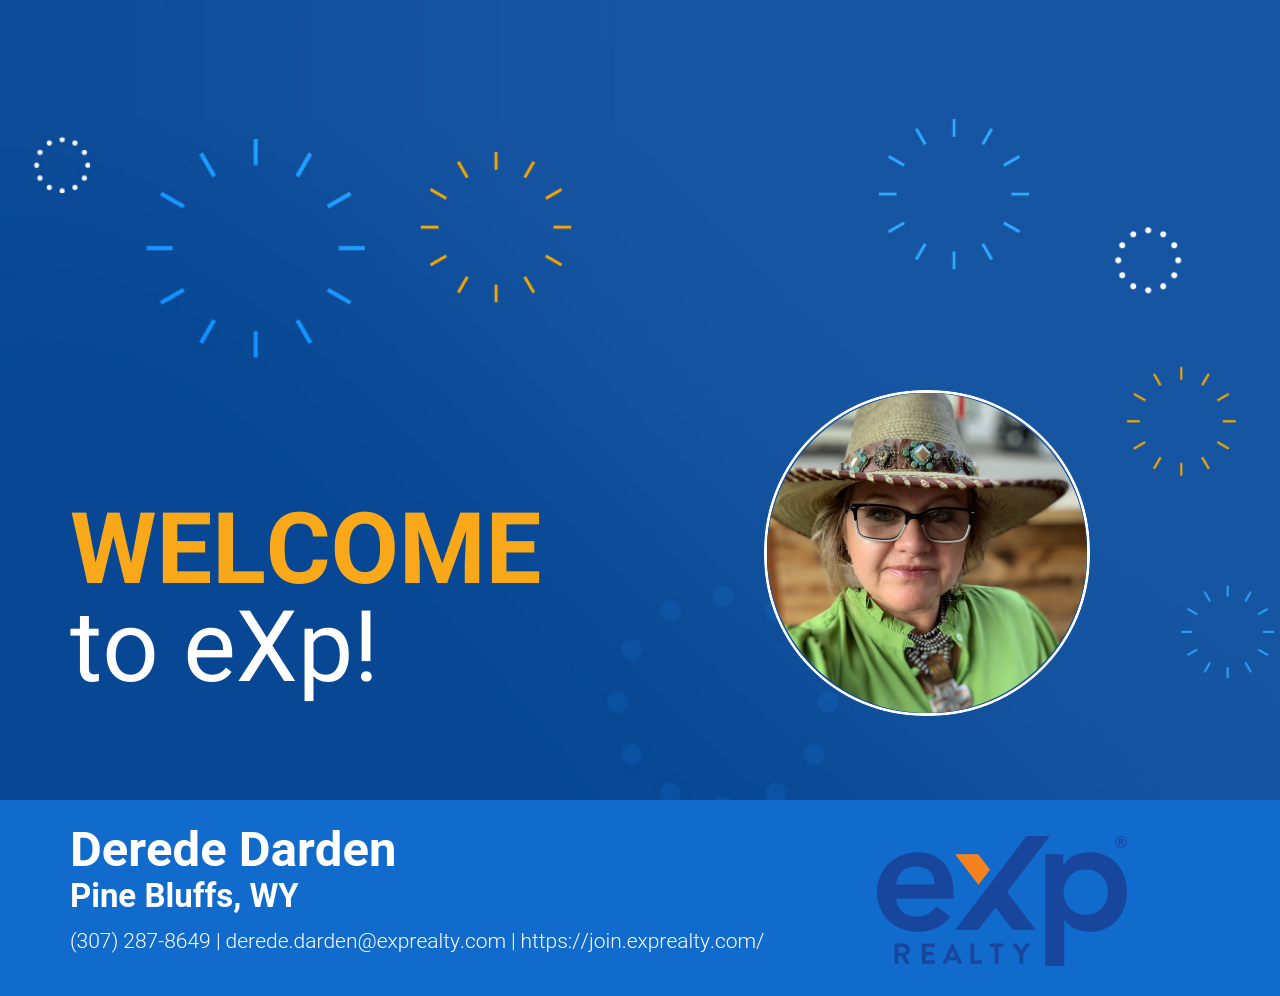 Derede Darden Joined eXp Realty!